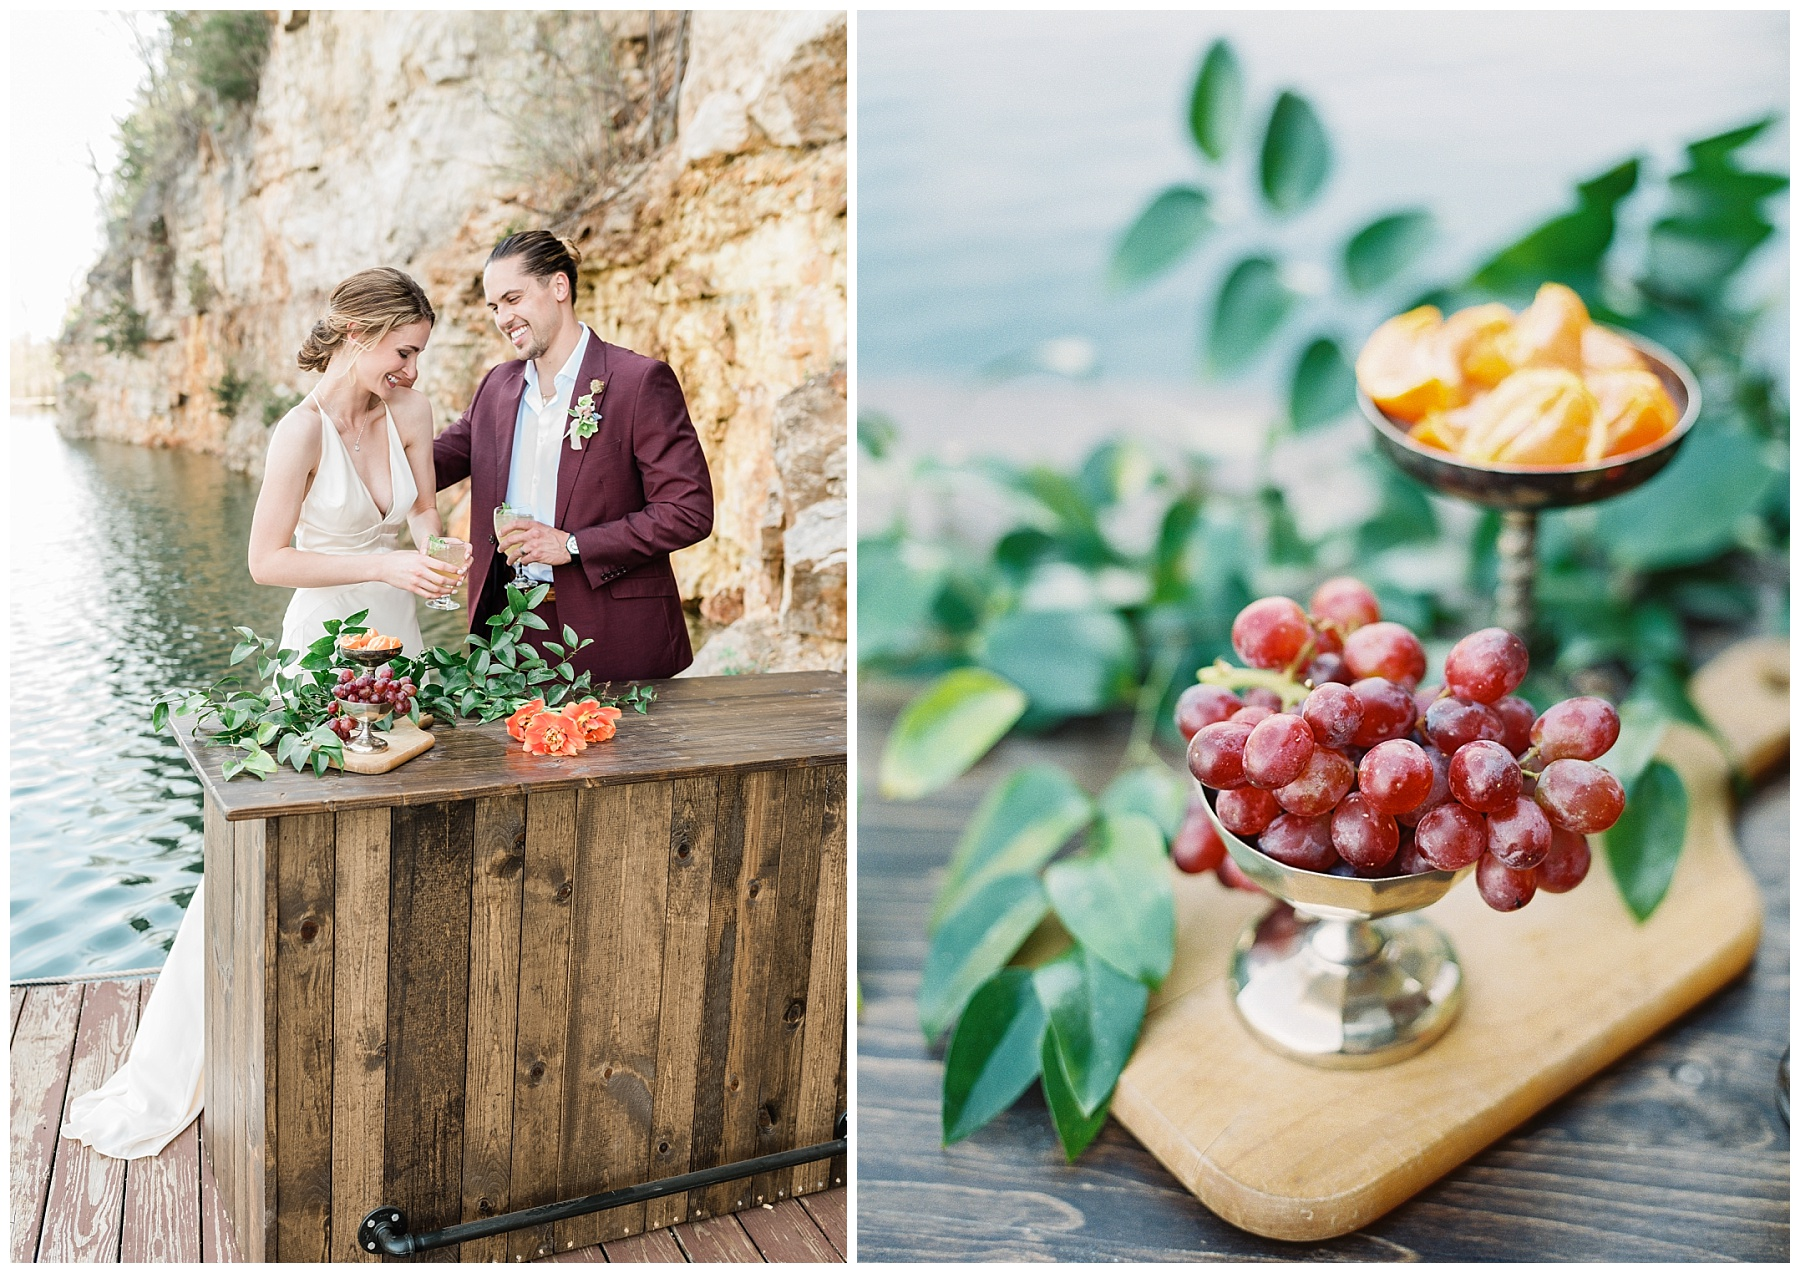 Intimate Spanish and French Inspired Destination Wedding with Lakeside Dinner Party at Dusk at Wildcliff by Kelsi Kliethermes Photography Best Missouri and Maui Wedding Photographer_0026.jpg